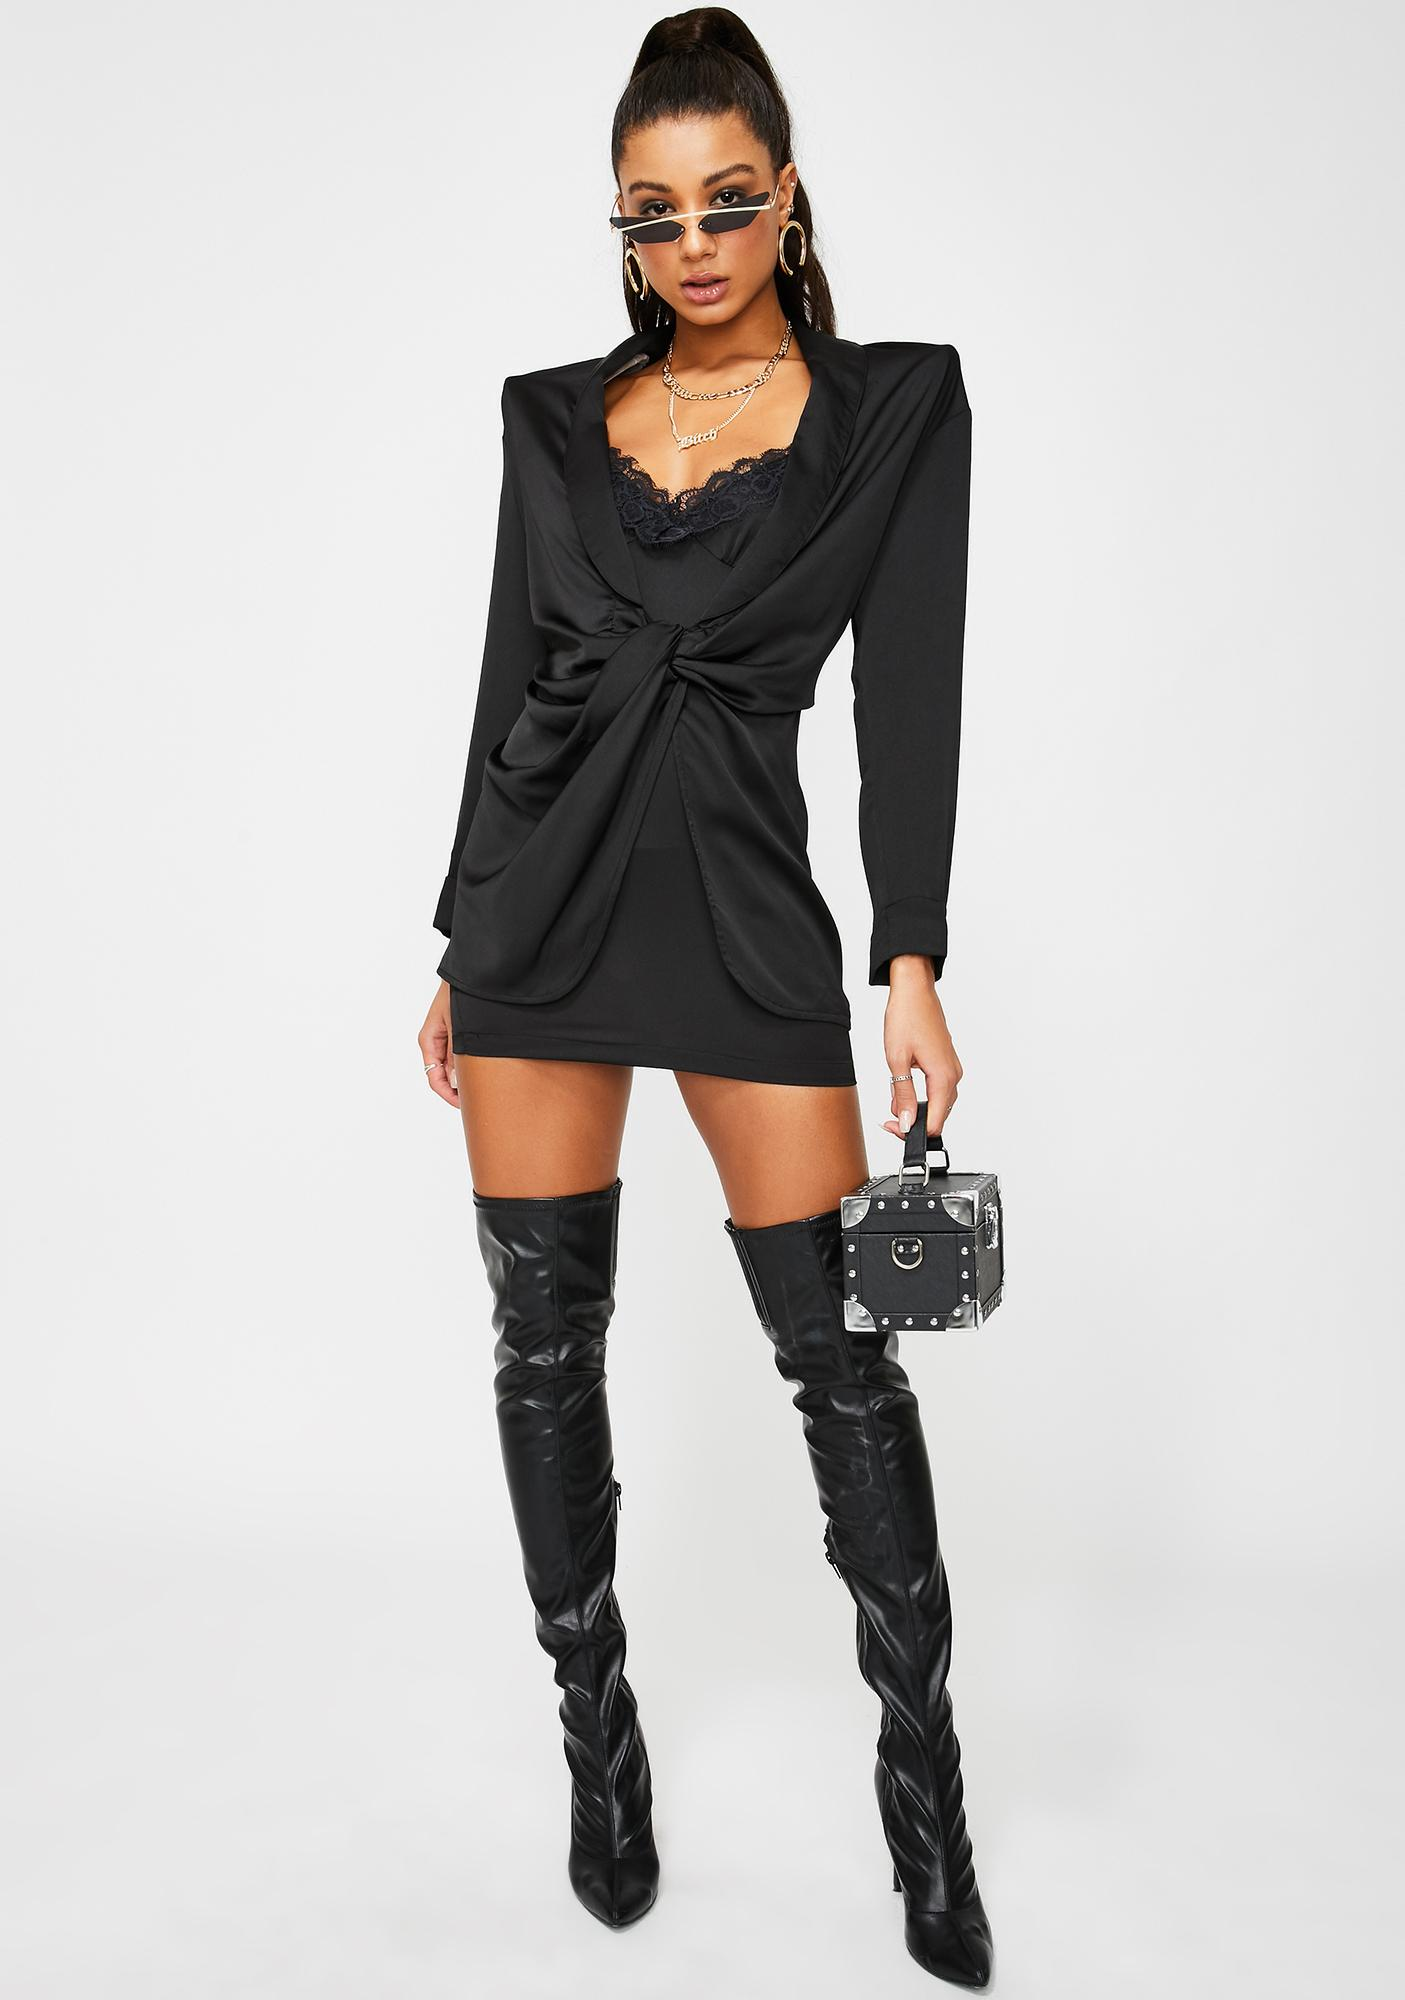 Lioness Downtown Girl Mini Dress